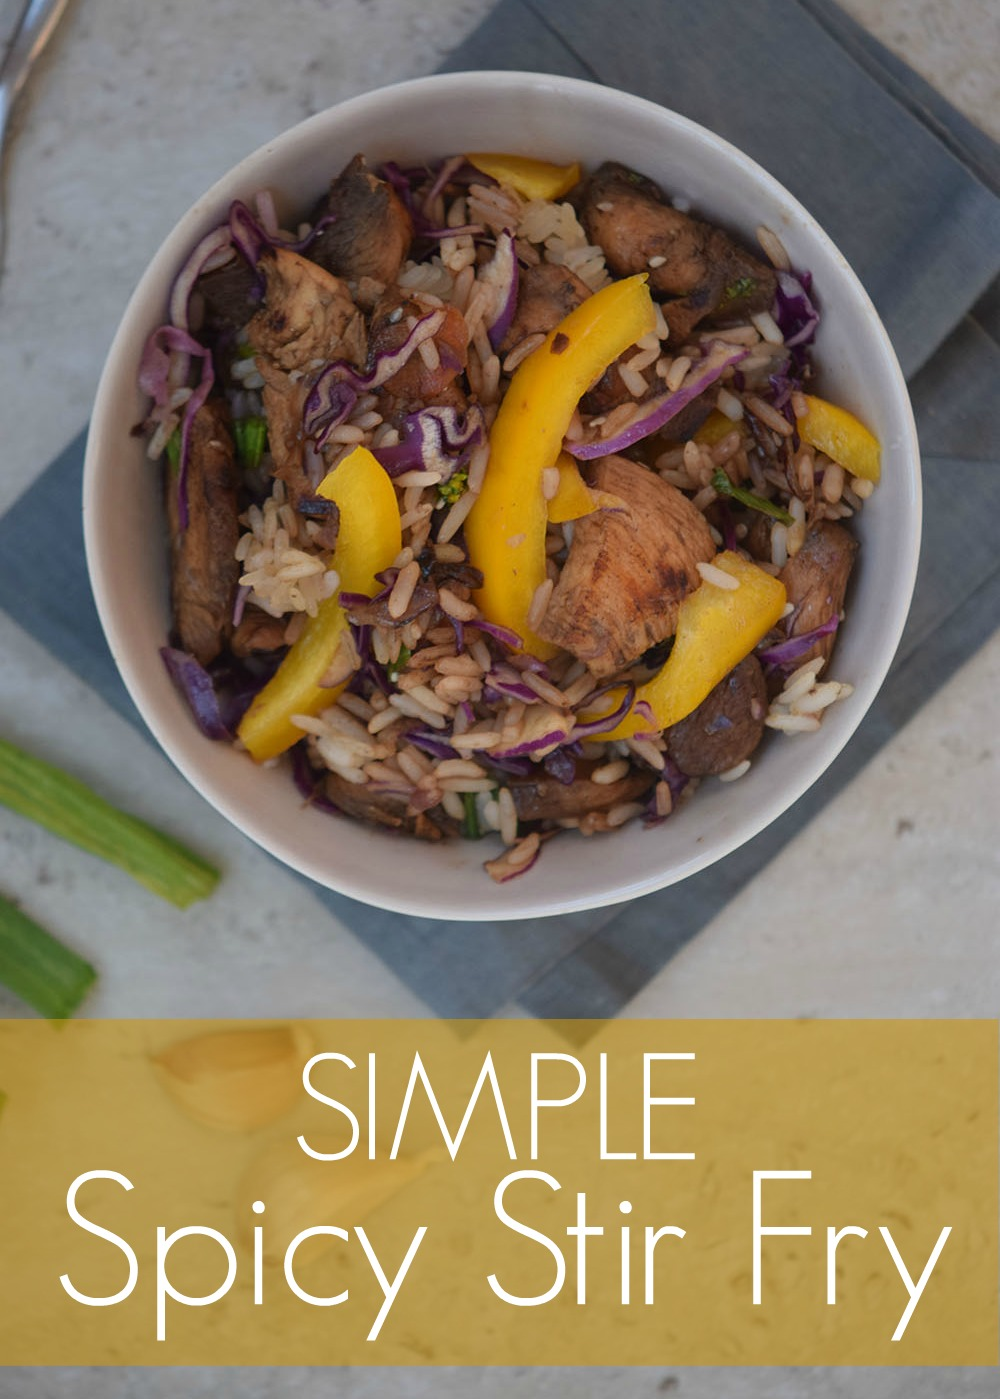 Red chili pepper flakes add spice to this flavorful and simple stir fry with chicken, peppers, onion, and cabbage.